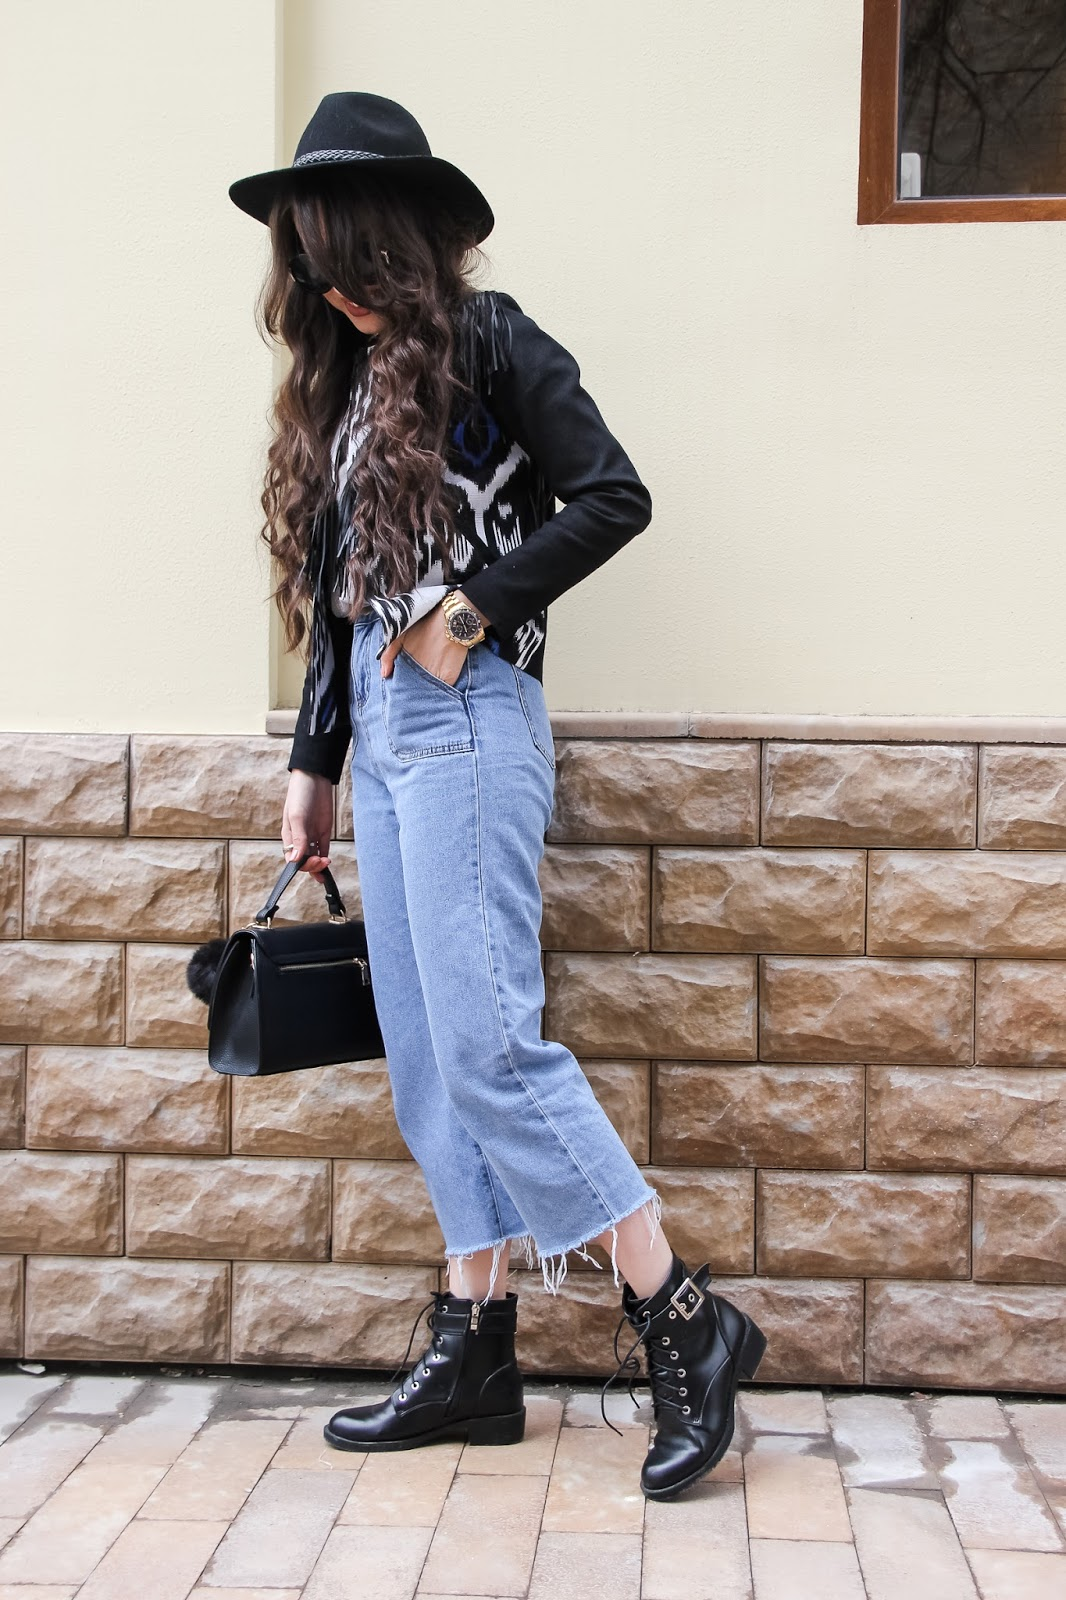 fashion blogger diyorasnotes adras jacket mom jeans boots hats national uzbek print